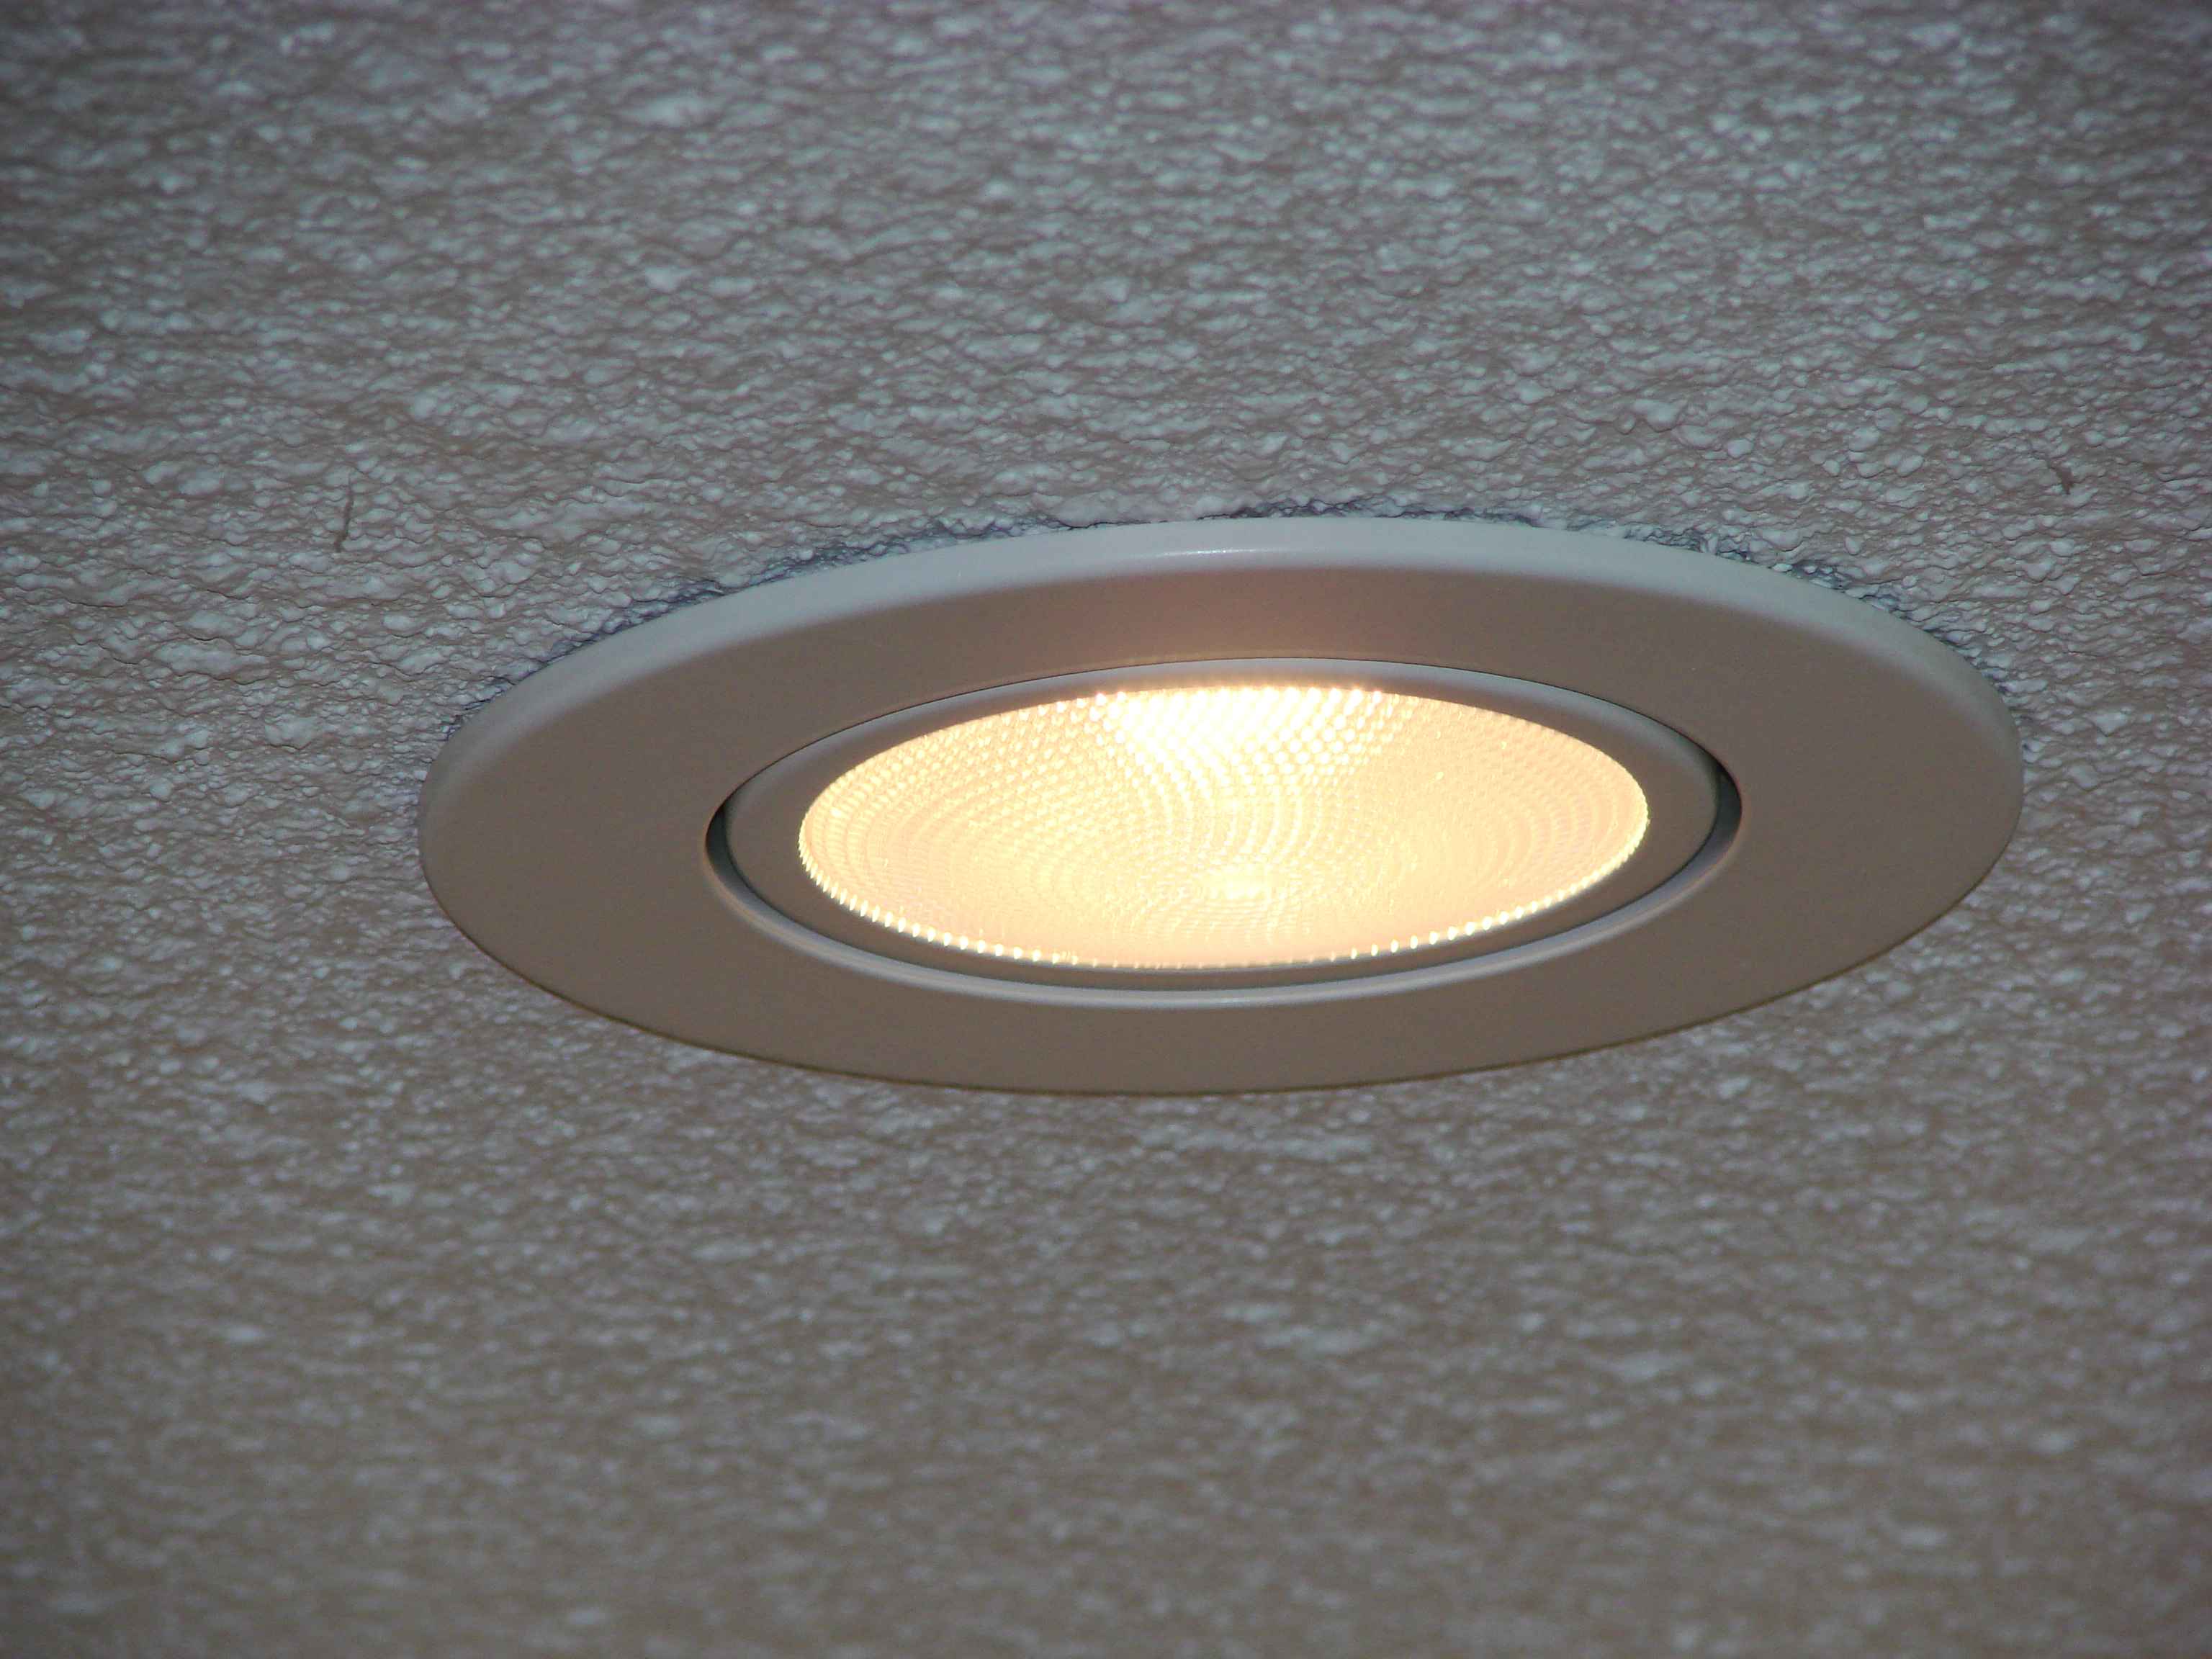 Inside Ceiling Lights | www.energywarden.net